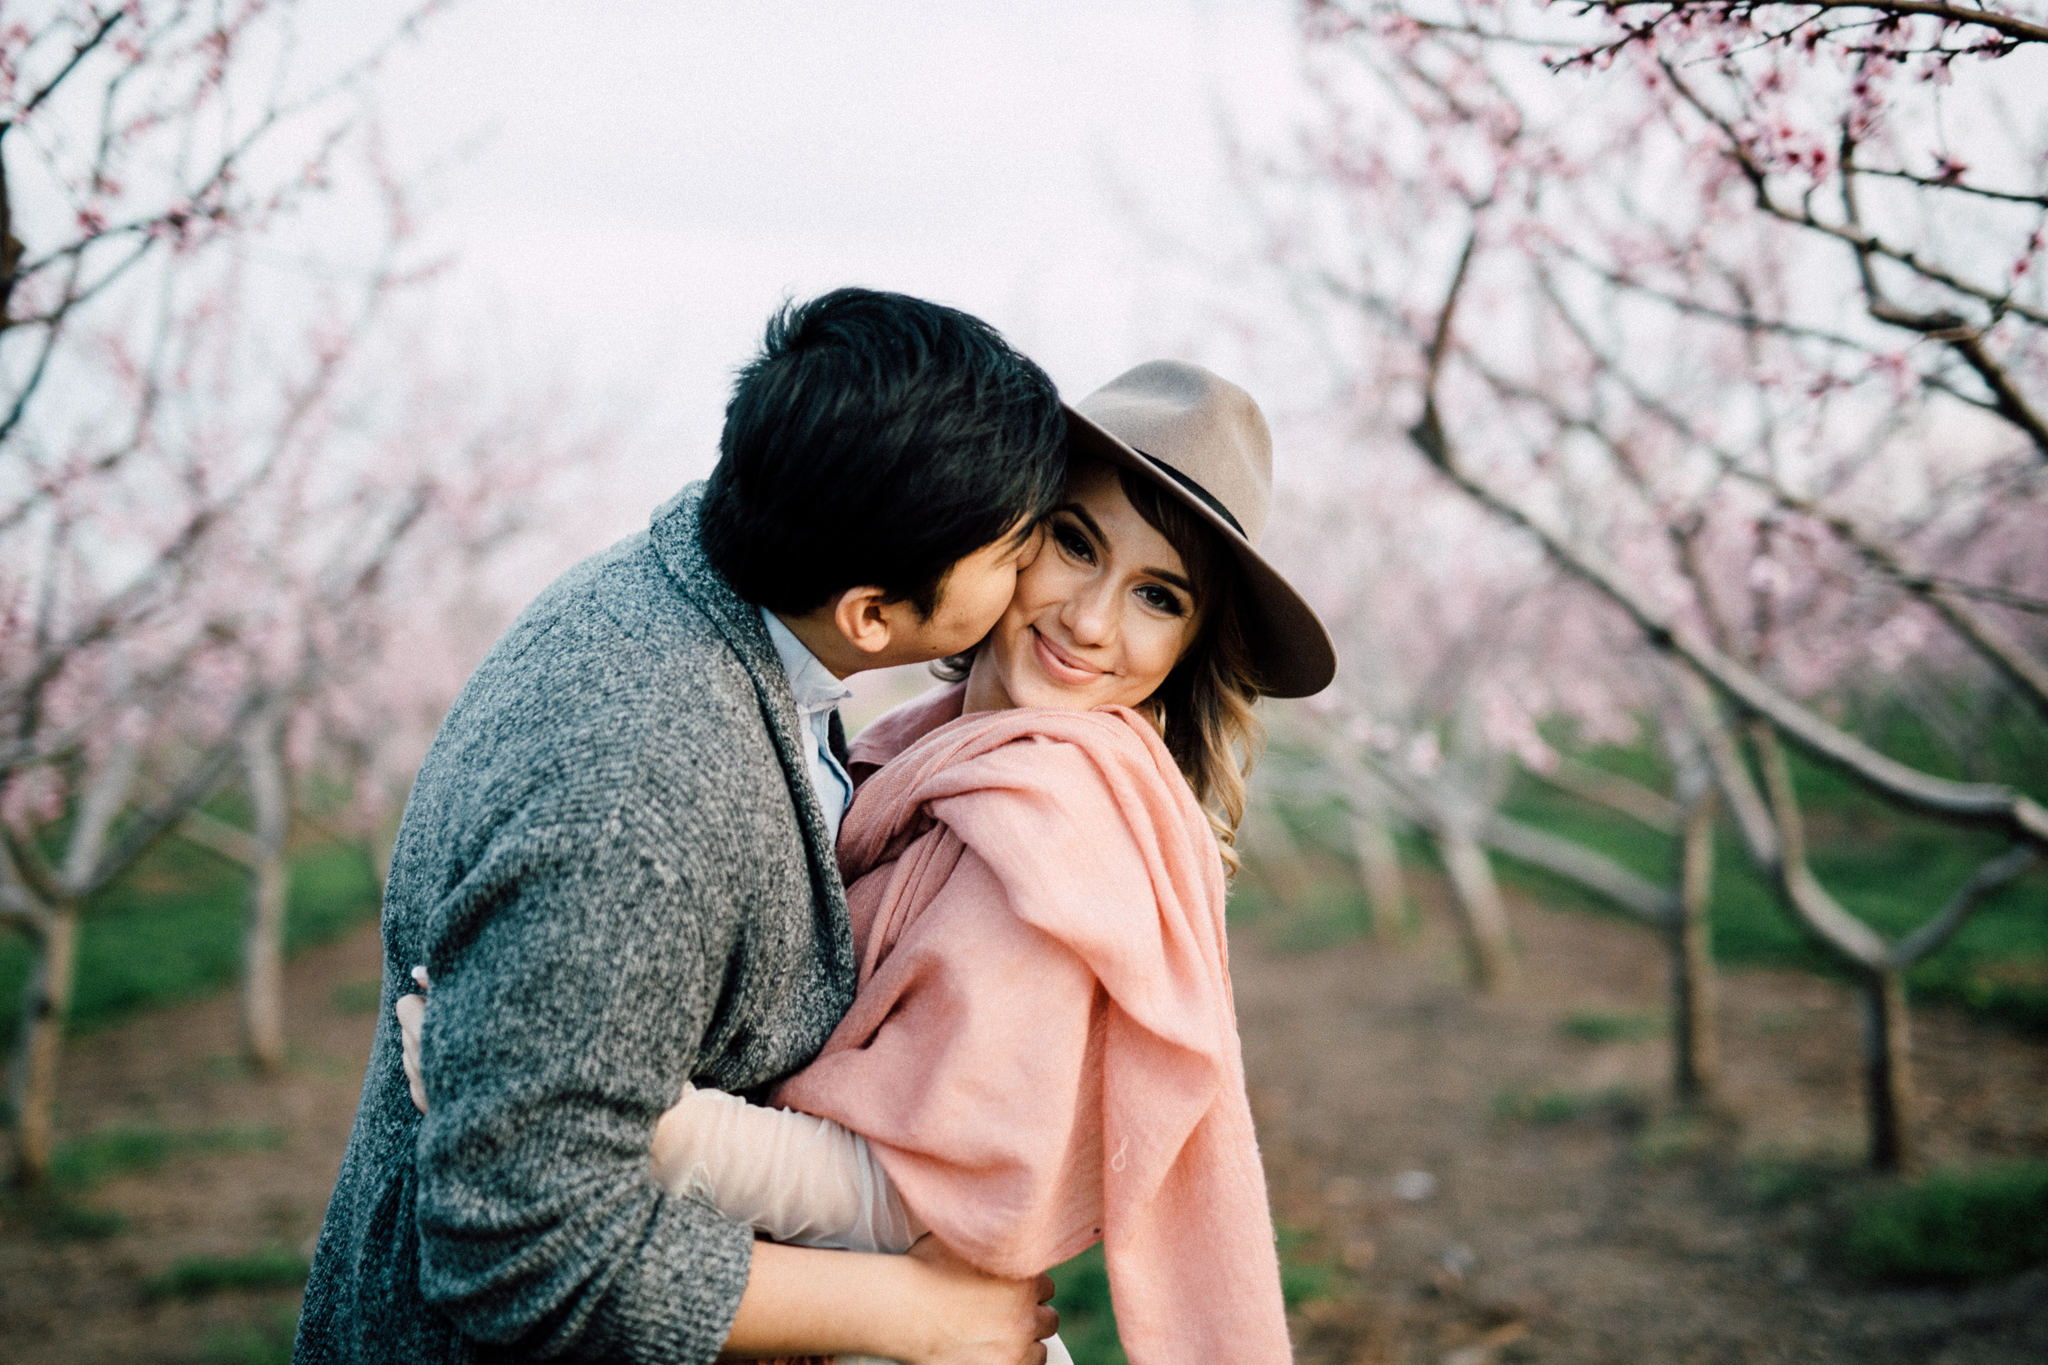 Niagara-Portrait-Session-Niagara-On-The-Lake-Cherry-Blossoms-photography-by-Simply-Lace-Photography-053.JPG